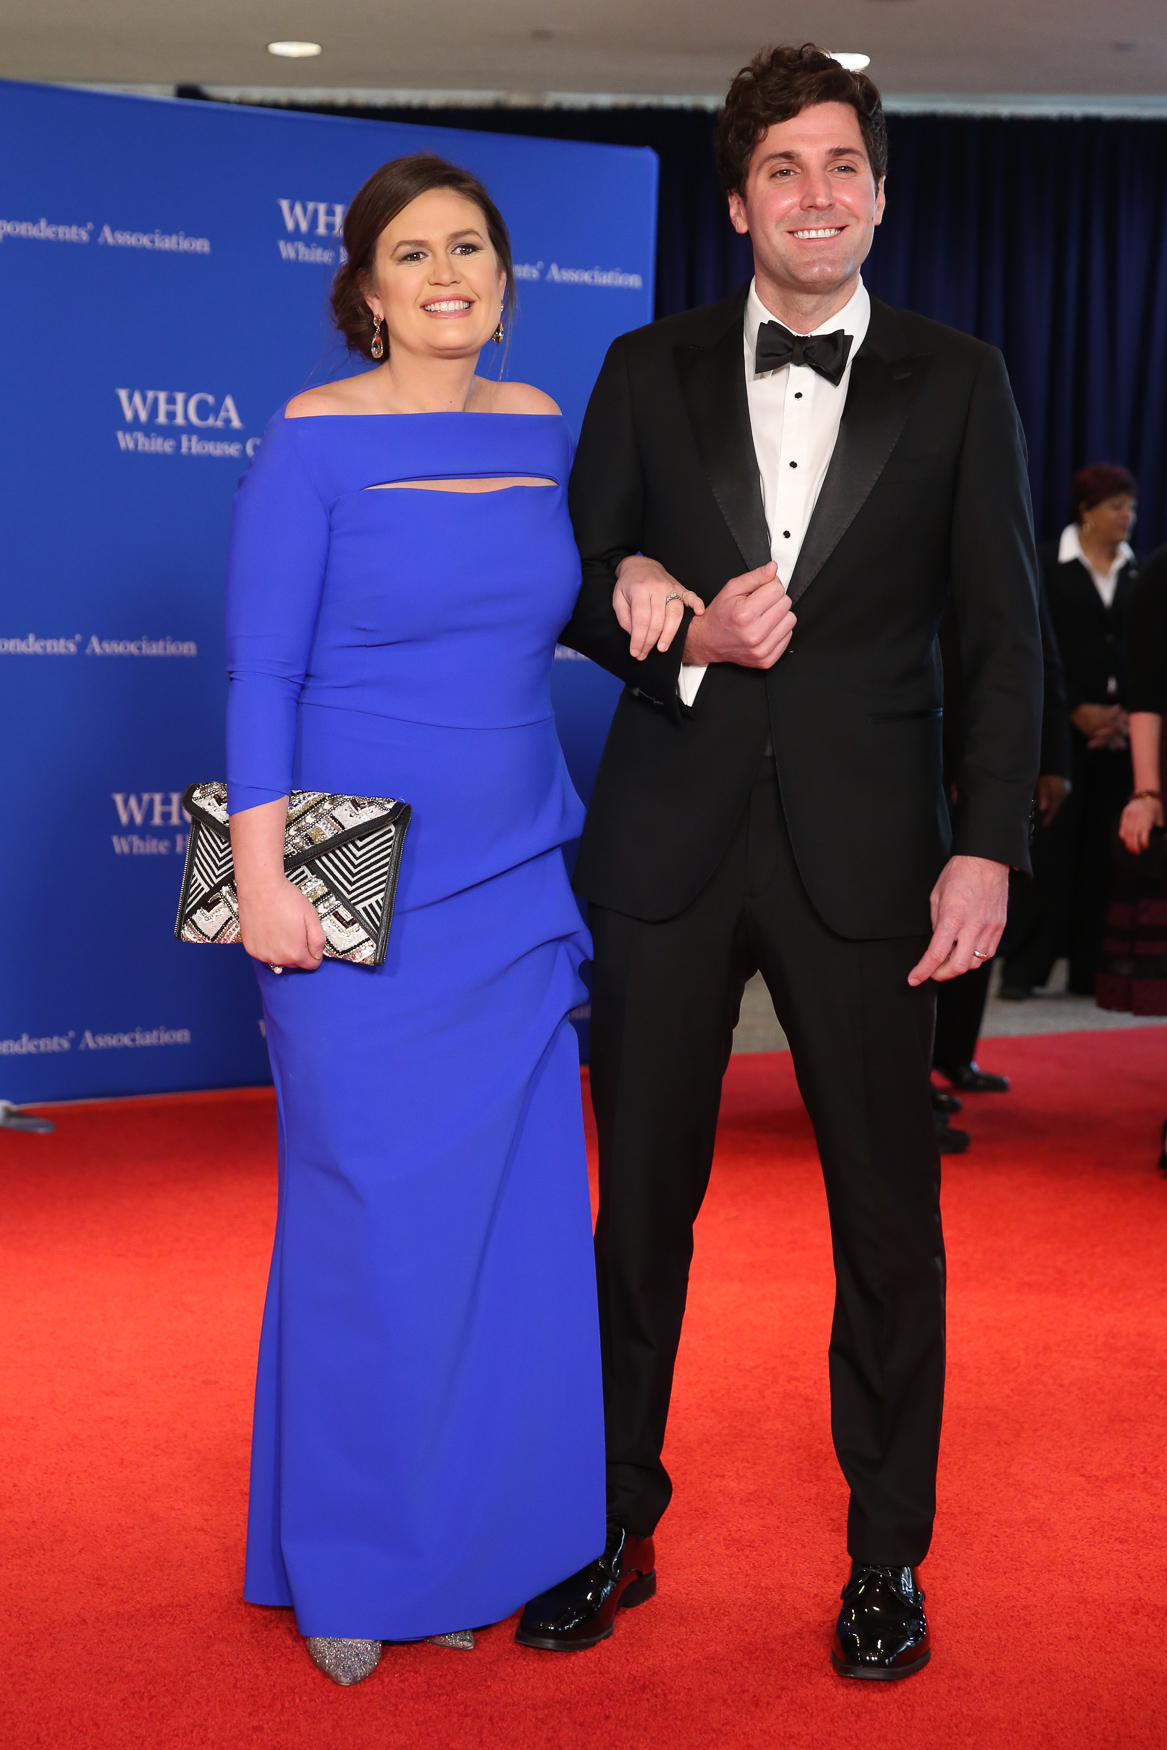 Sara Huckabee Sanders and her husband Bryan.{ } (Amanda Andrade-Rhaodes/DC Refined)